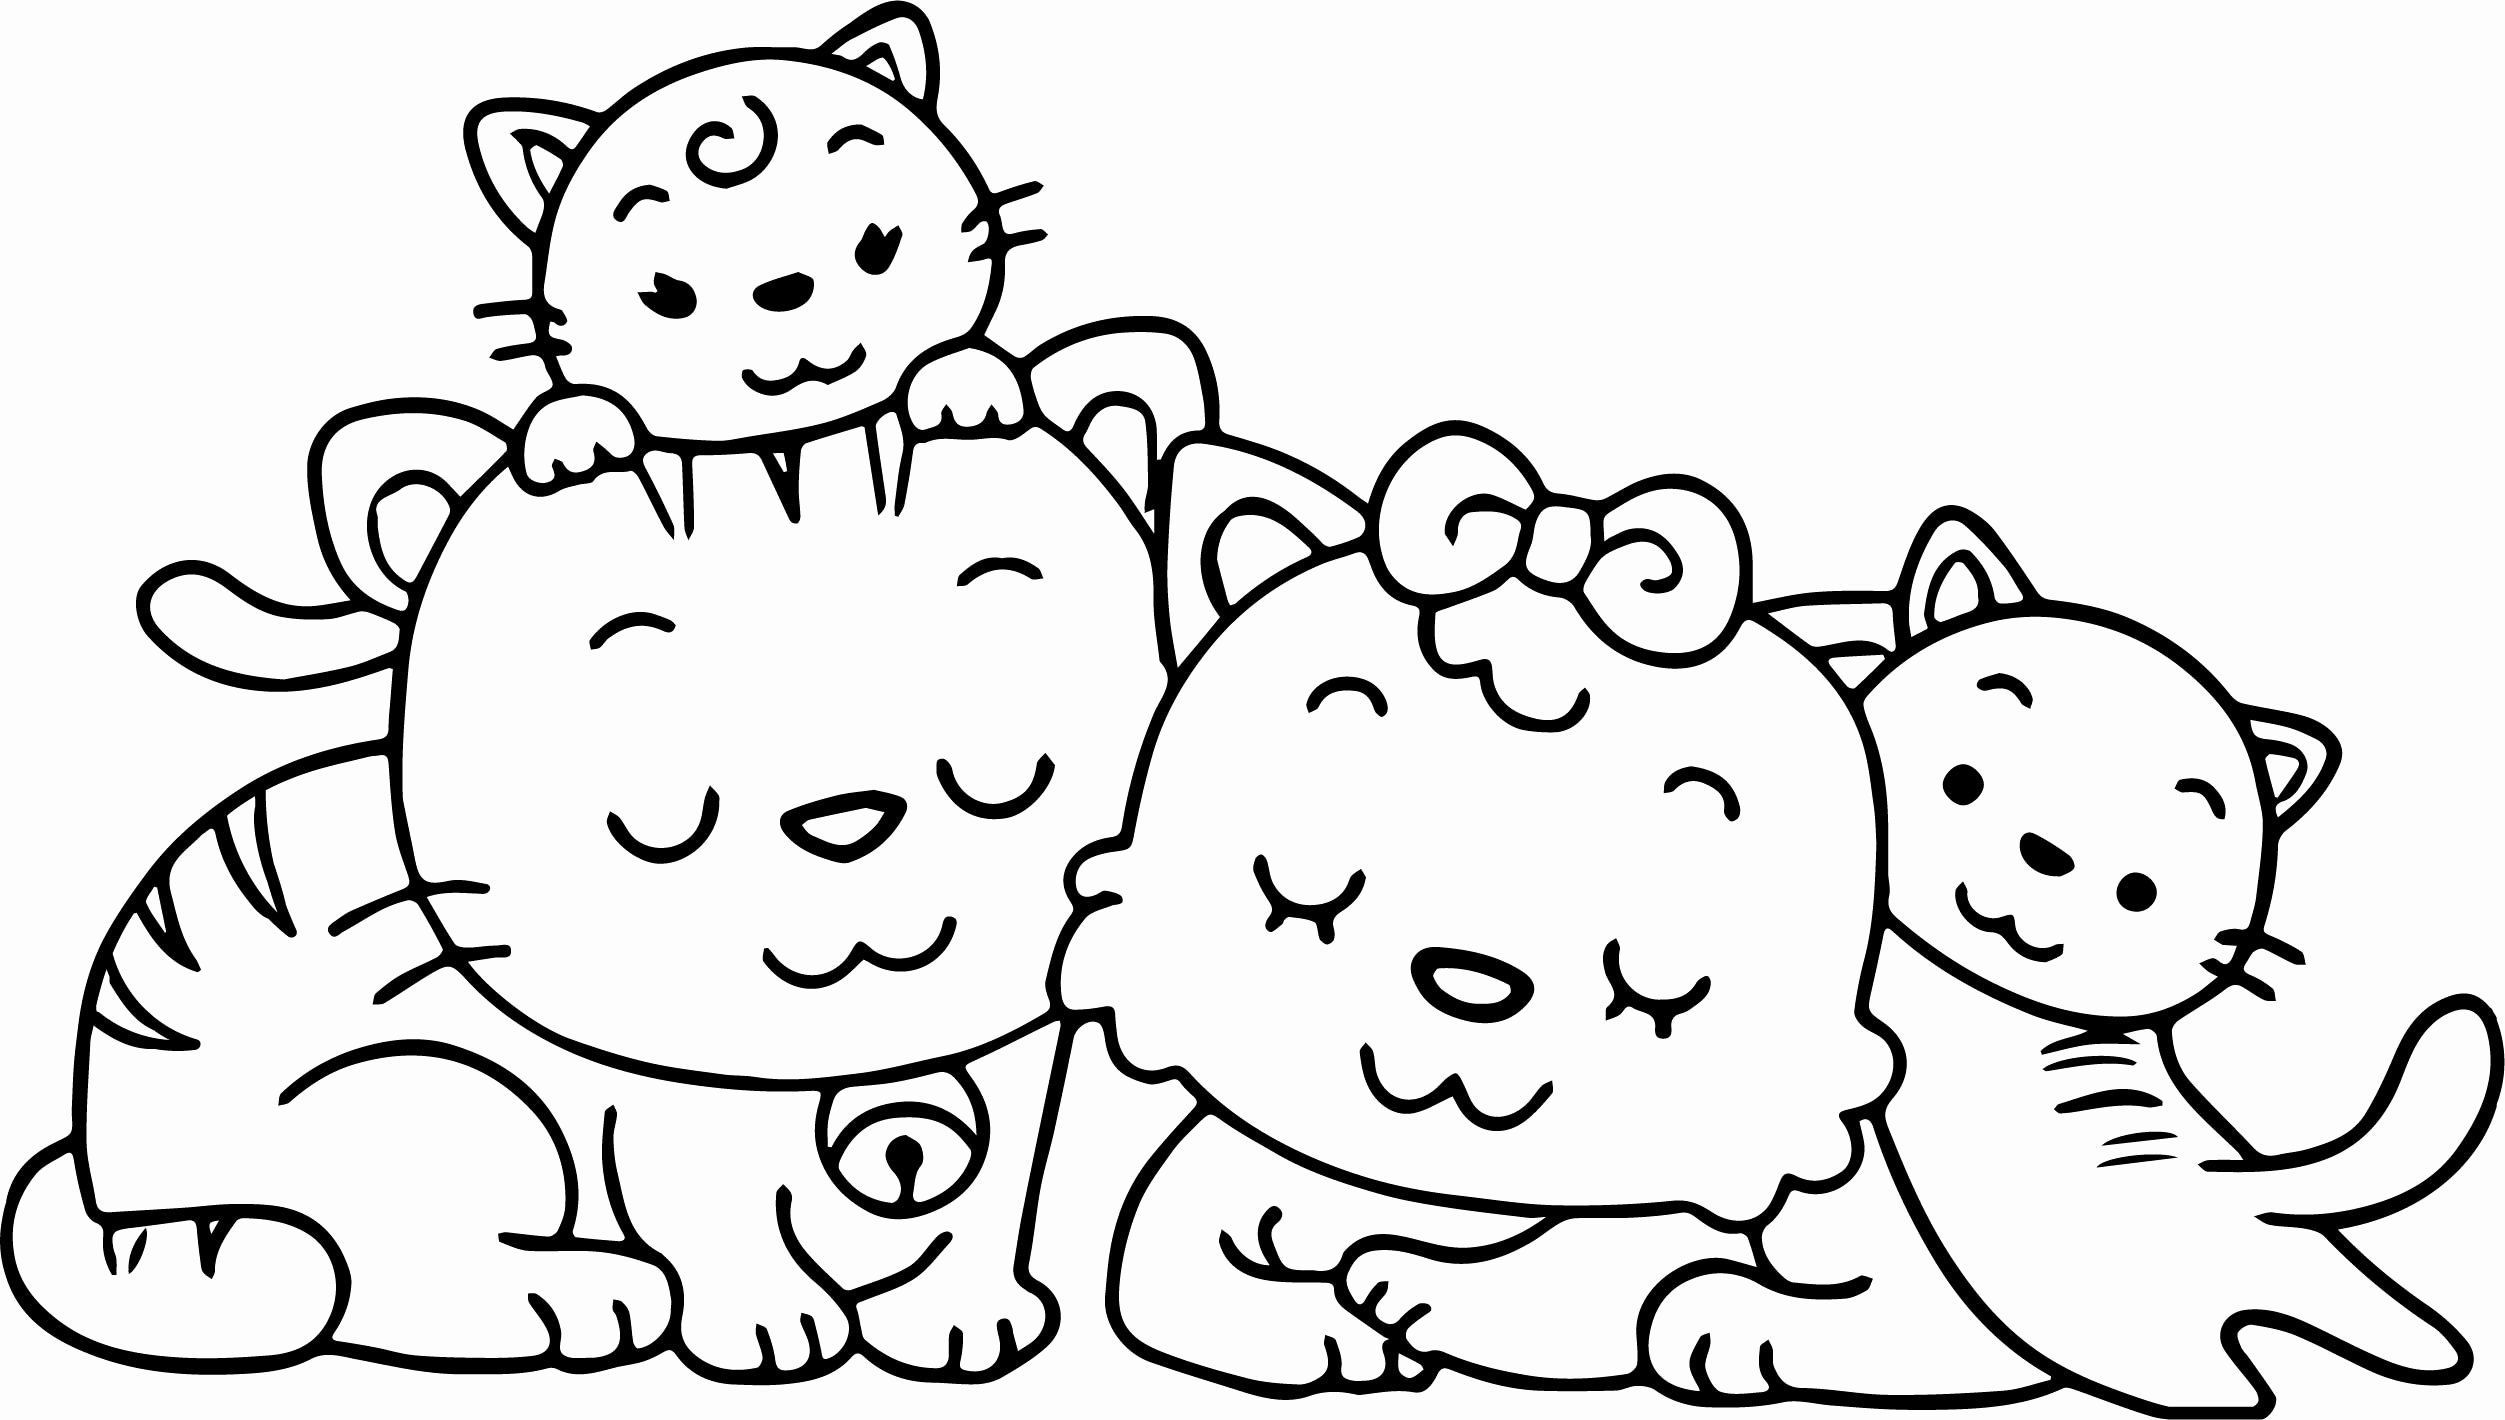 Coloring Pages Of Family Unique Cat Family Coloring Pages Halloweencoloringpages Coloring Pages Family Coloring Pages Bee Coloring Pages Monkey Coloring Pages